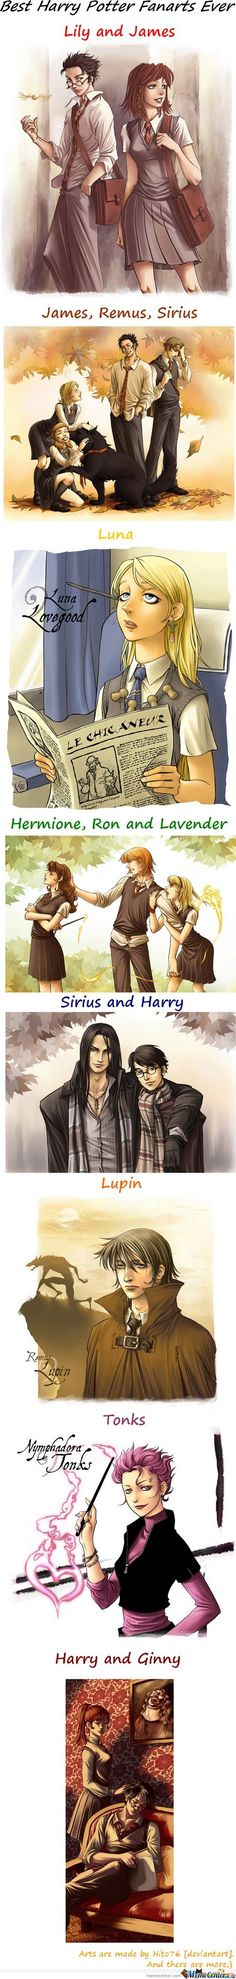 Harry Potter fanarts by (deviantart). Harry Potter in anime style. Fanart Harry Potter, Harry Potter World, Immer Harry Potter, Mundo Harry Potter, Harry Potter Fan Art, Harry Potter Universal, Harry Potter Fandom, Manga Xd, Fans D'harry Potter